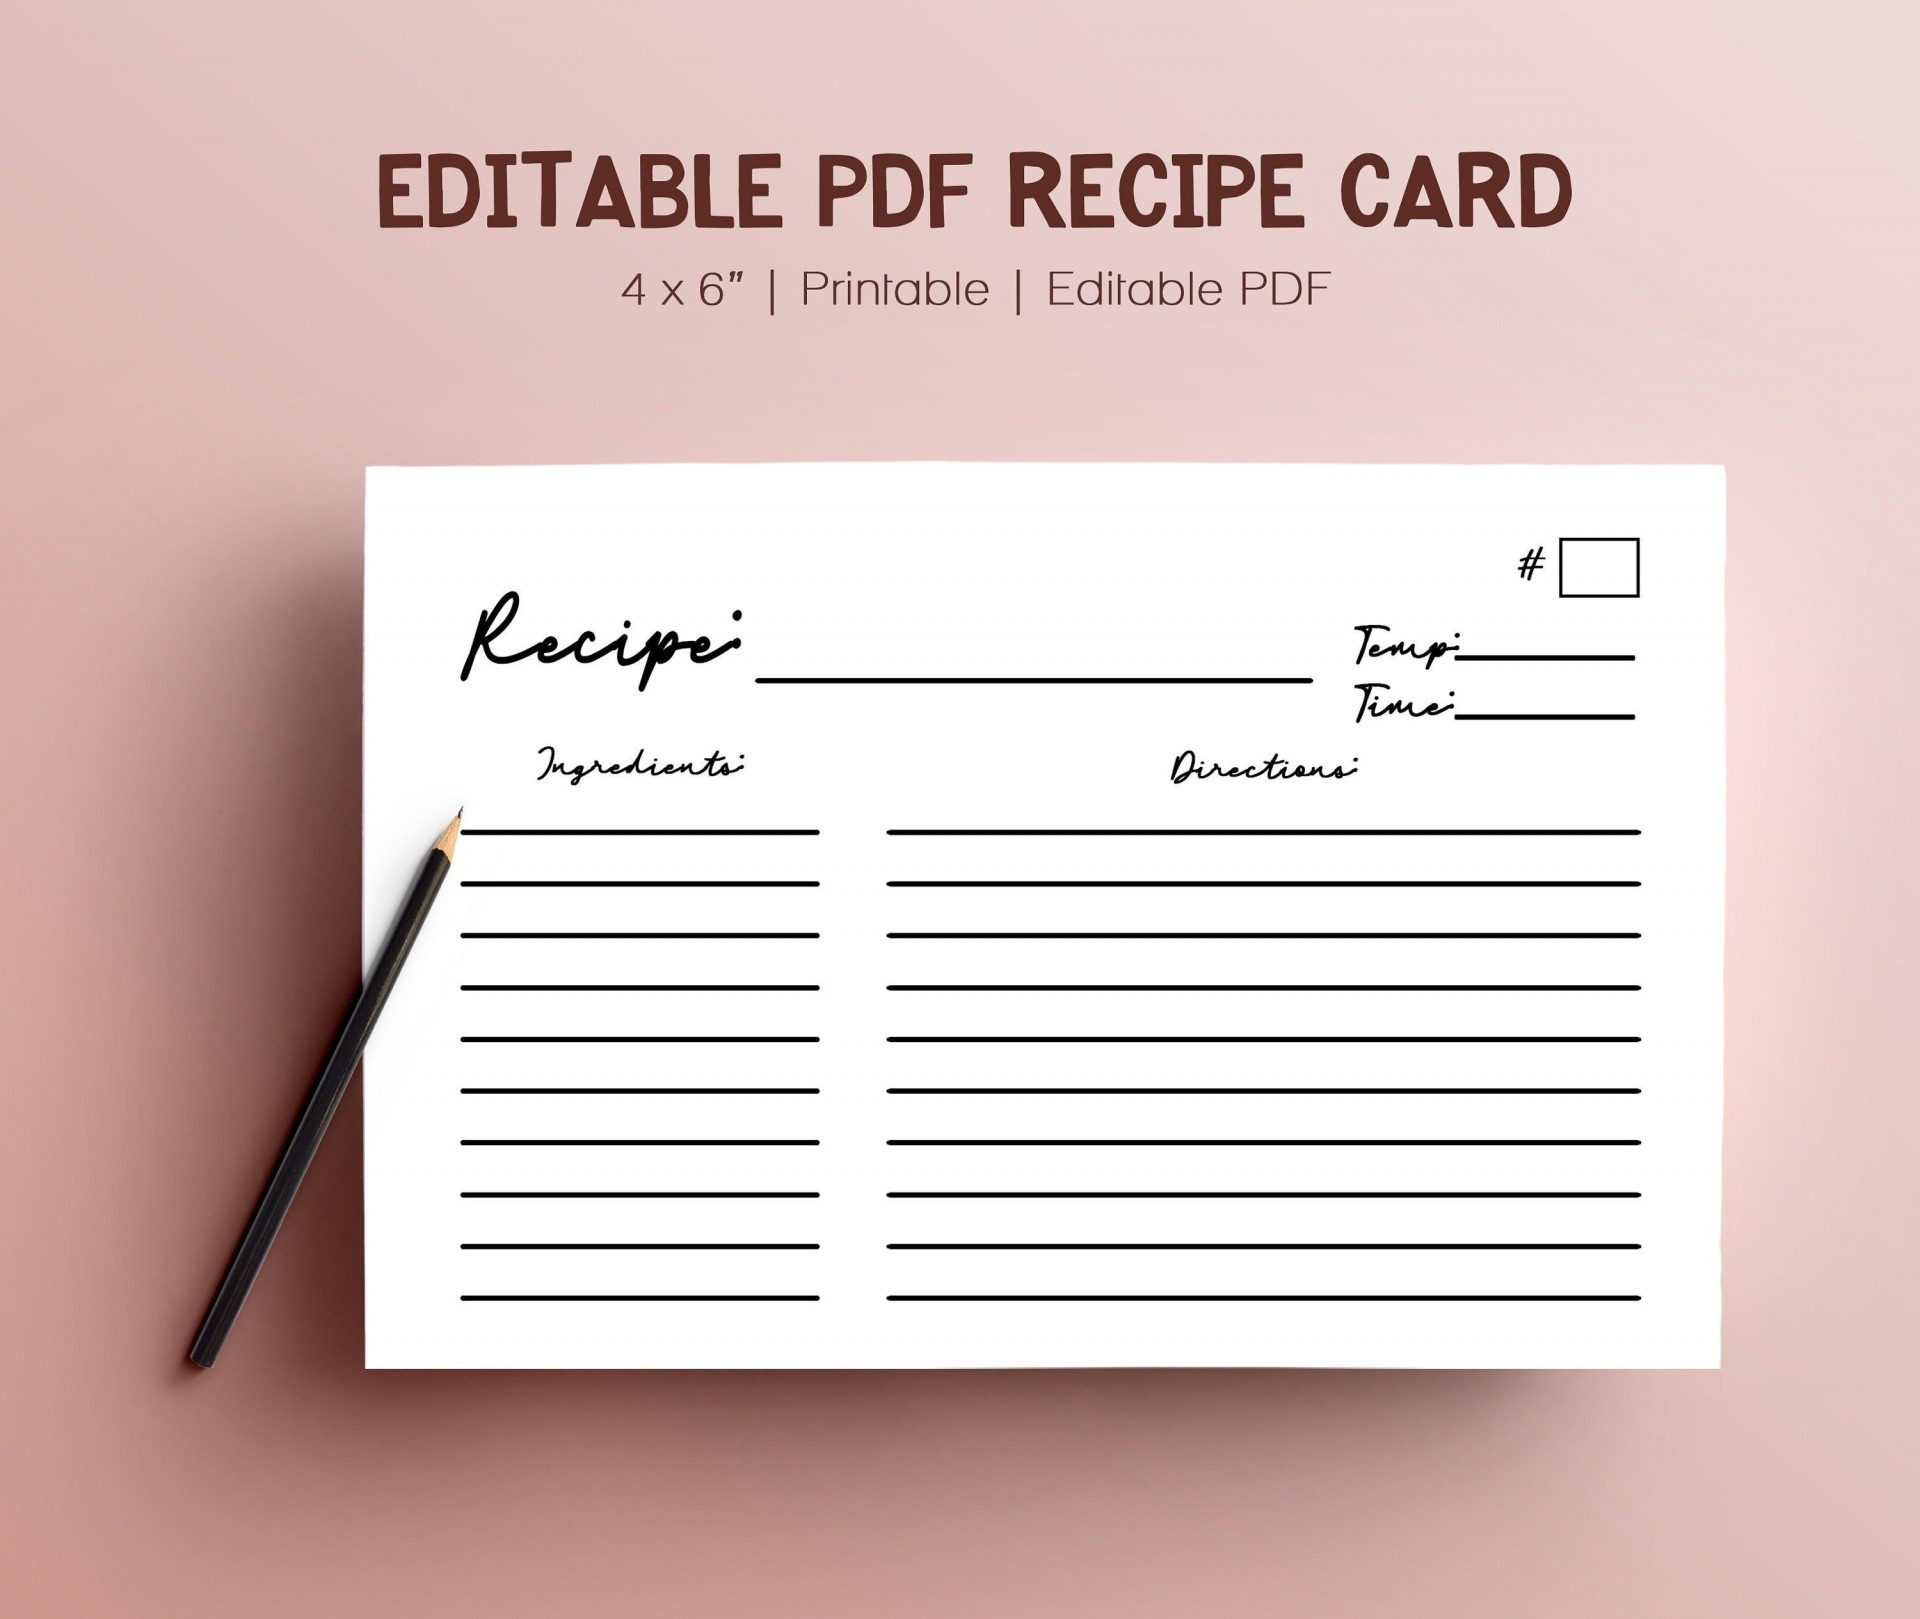 003 Stupendou Editable Recipe Card Template Highest Quality  Free For Microsoft Word 4x6 Page1920